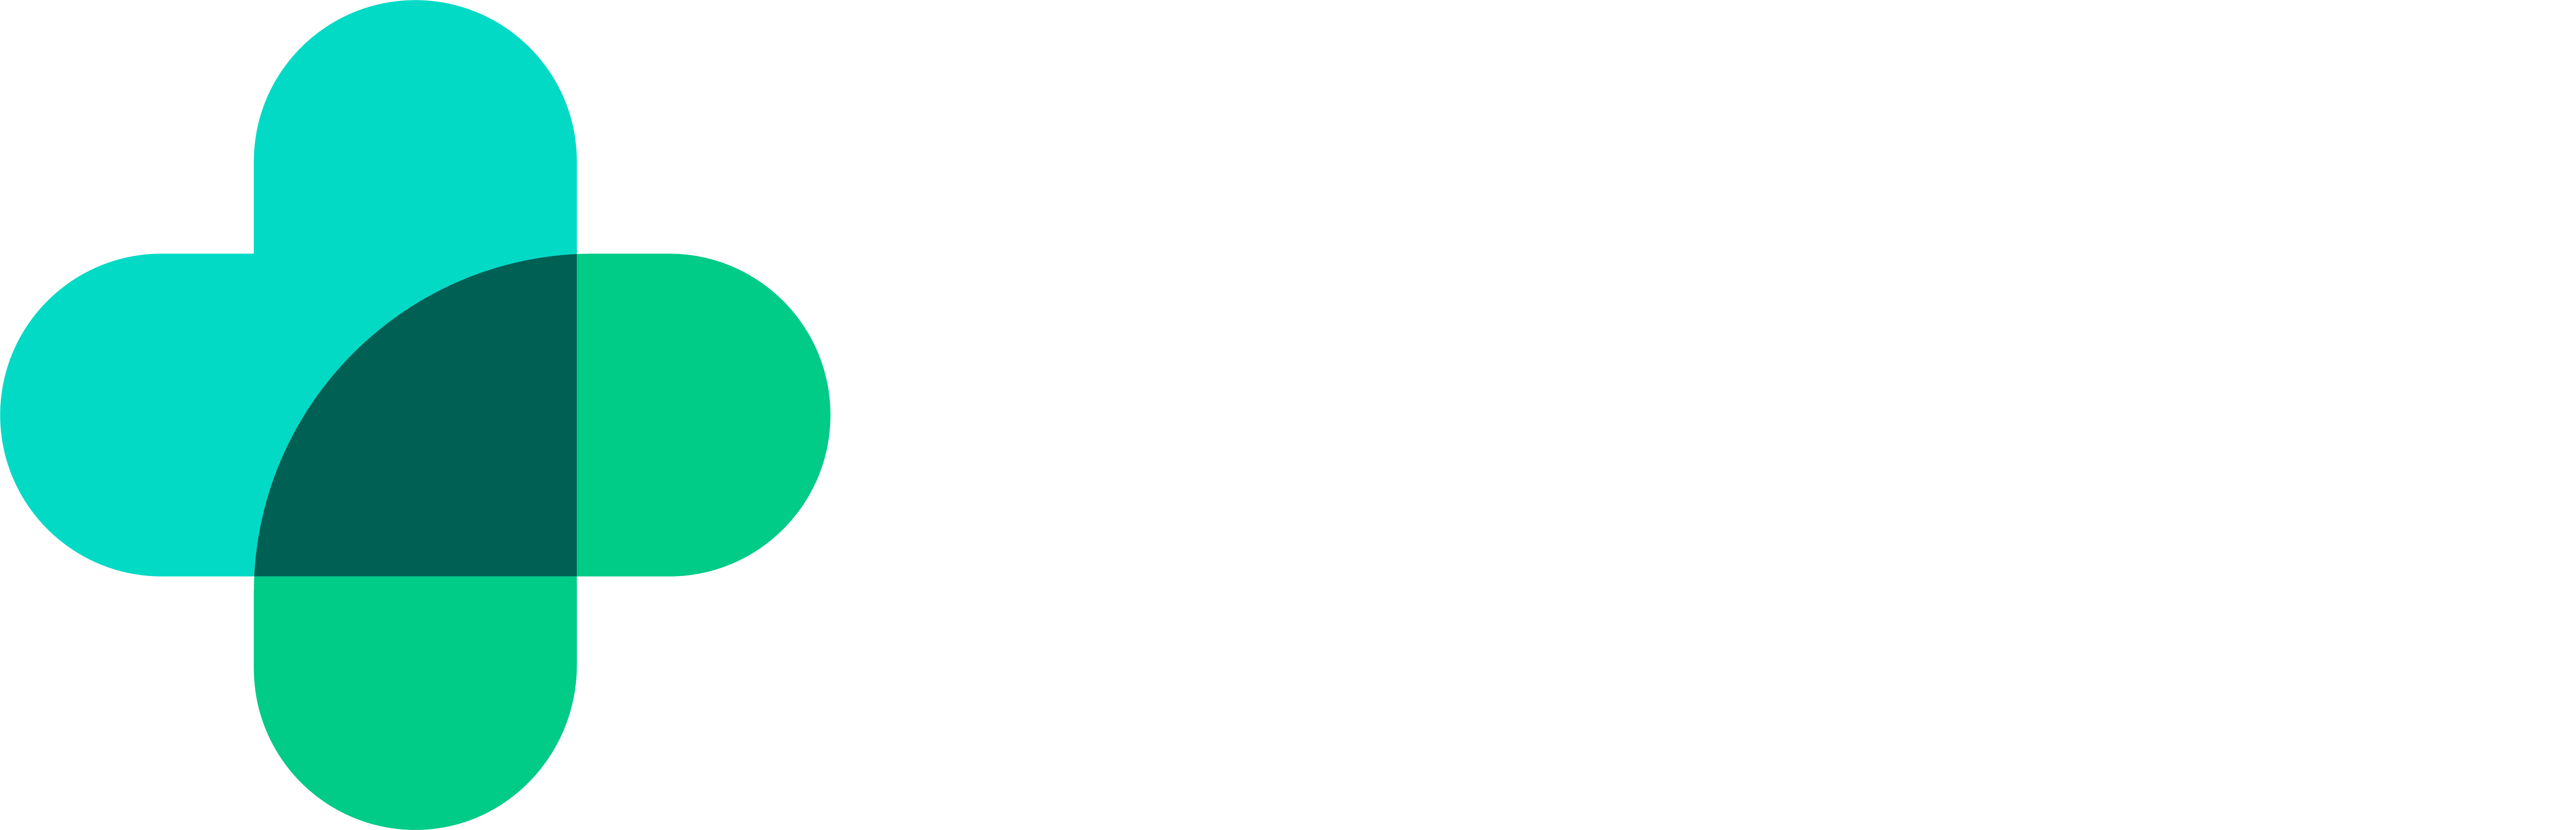 First Stop Safety Training